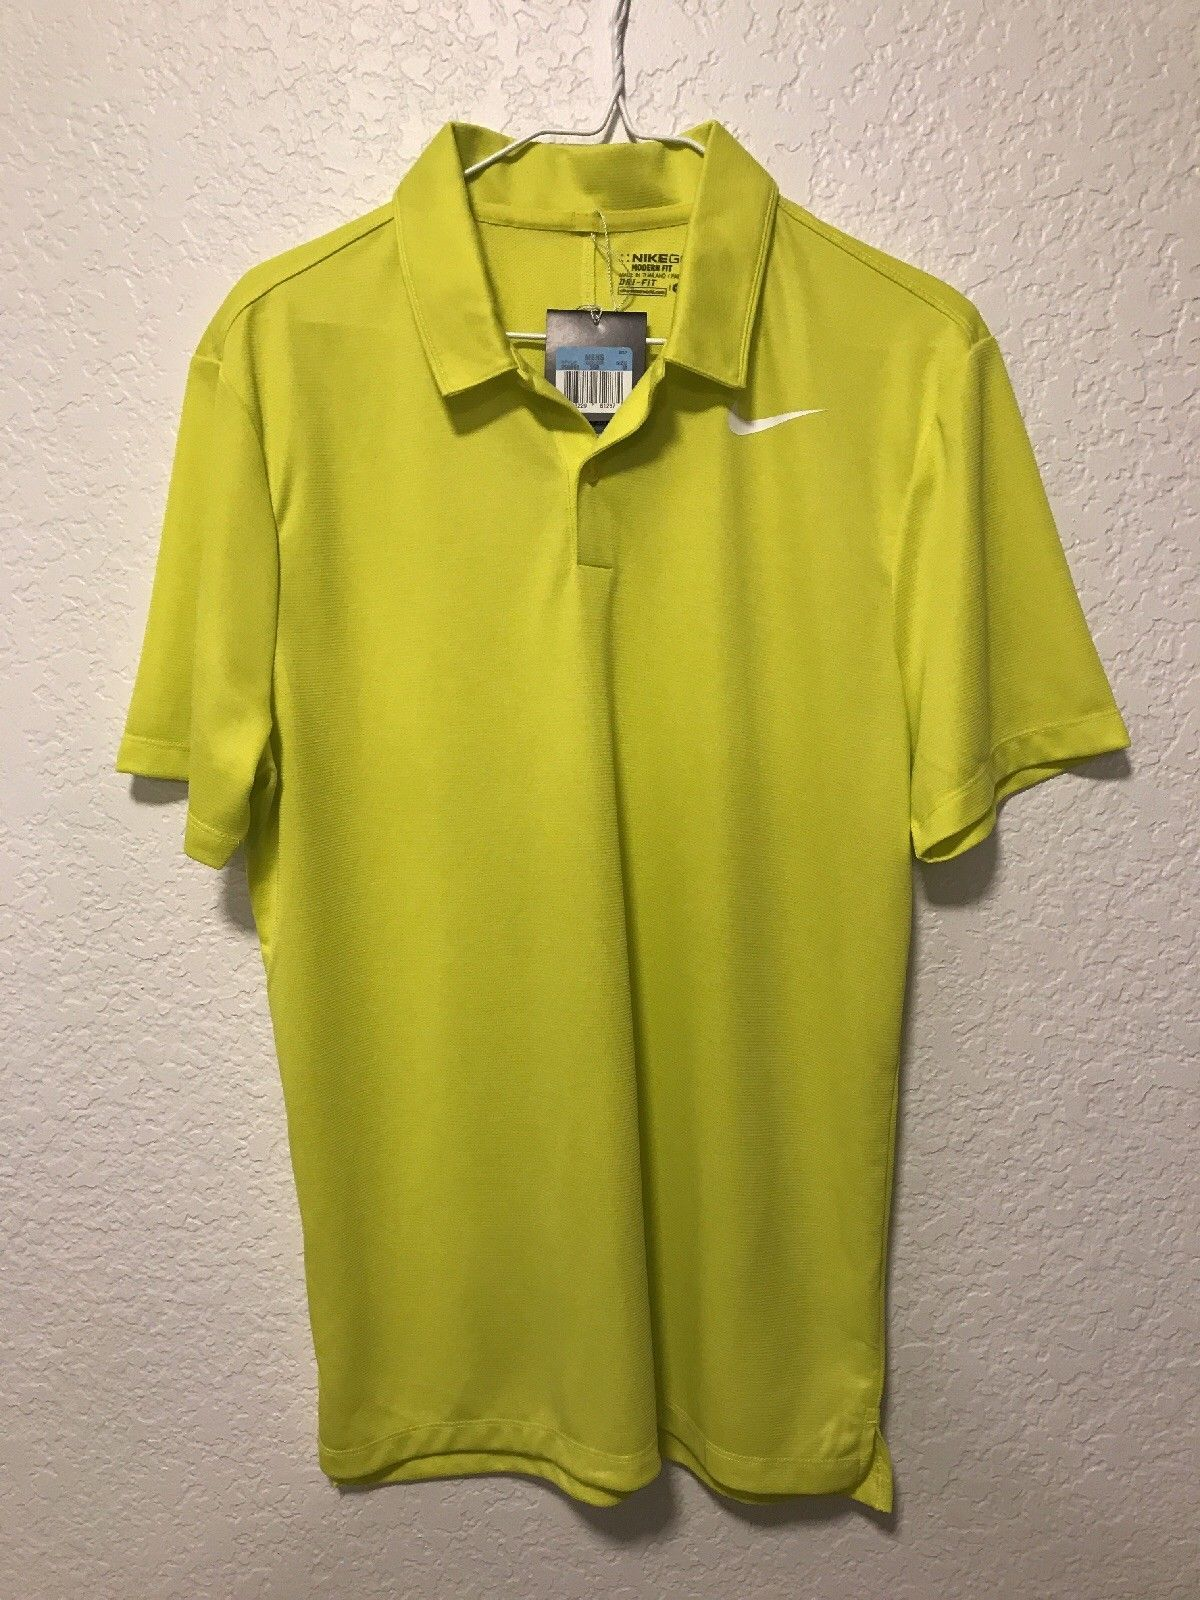 bf8706cfd12f3 NWT Nike Ultra 2 Slim Fit Golf Polo Blade and similar items. S l1600